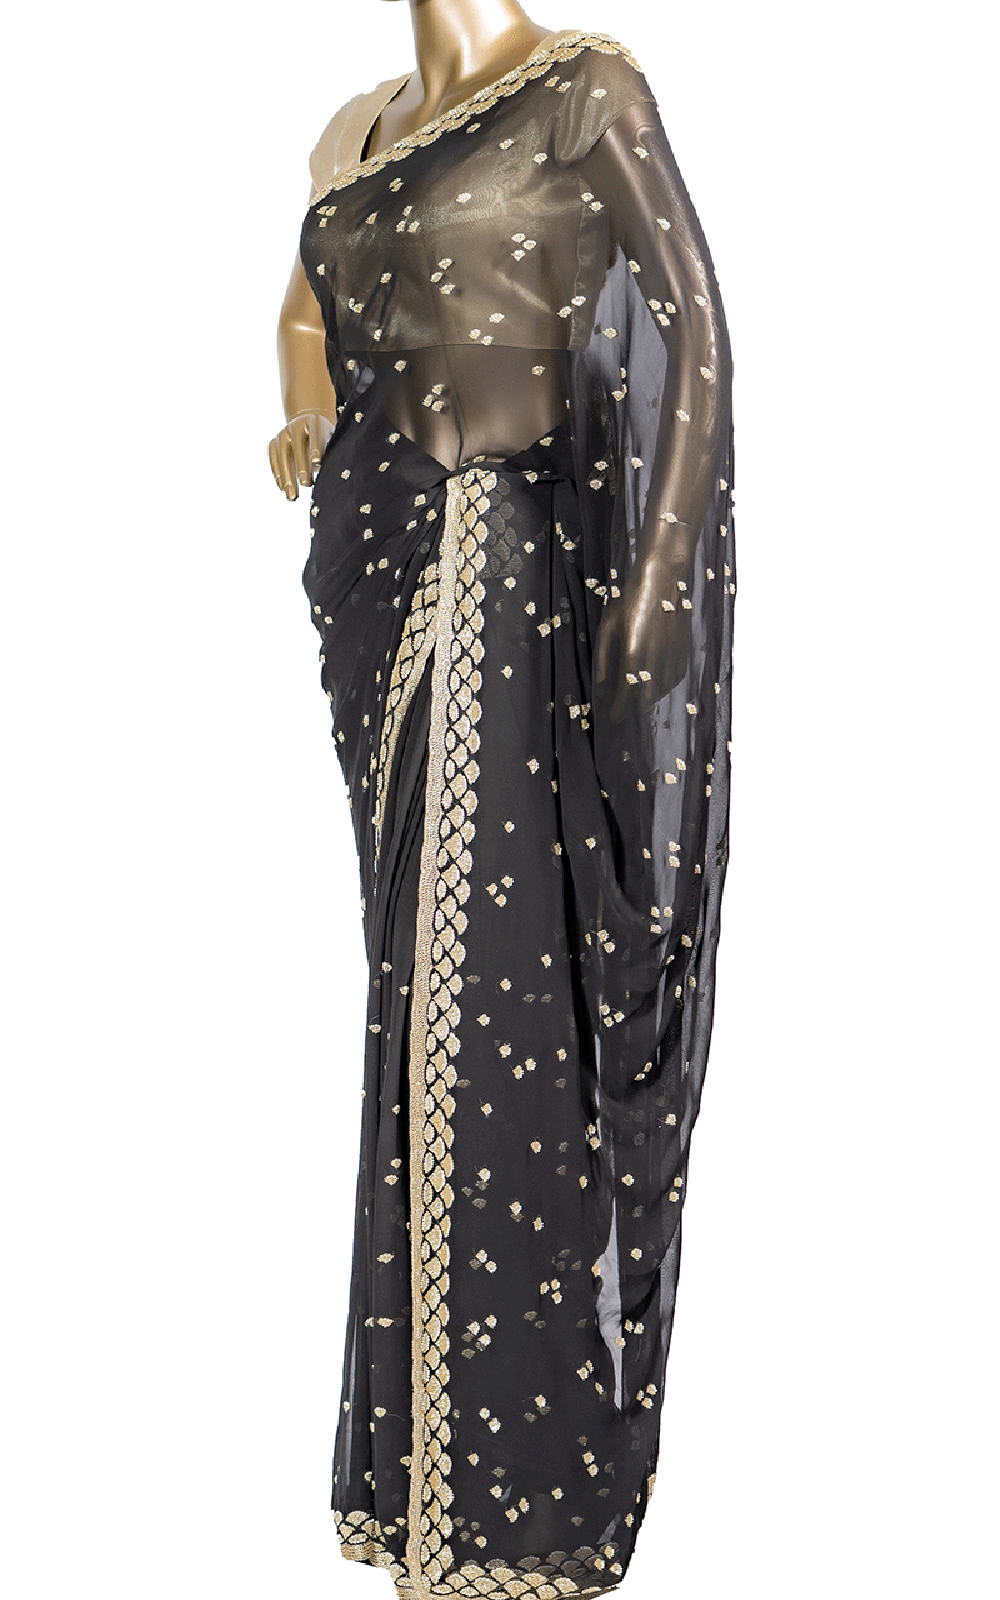 Black Saree with Pearl and Stone Embroidery